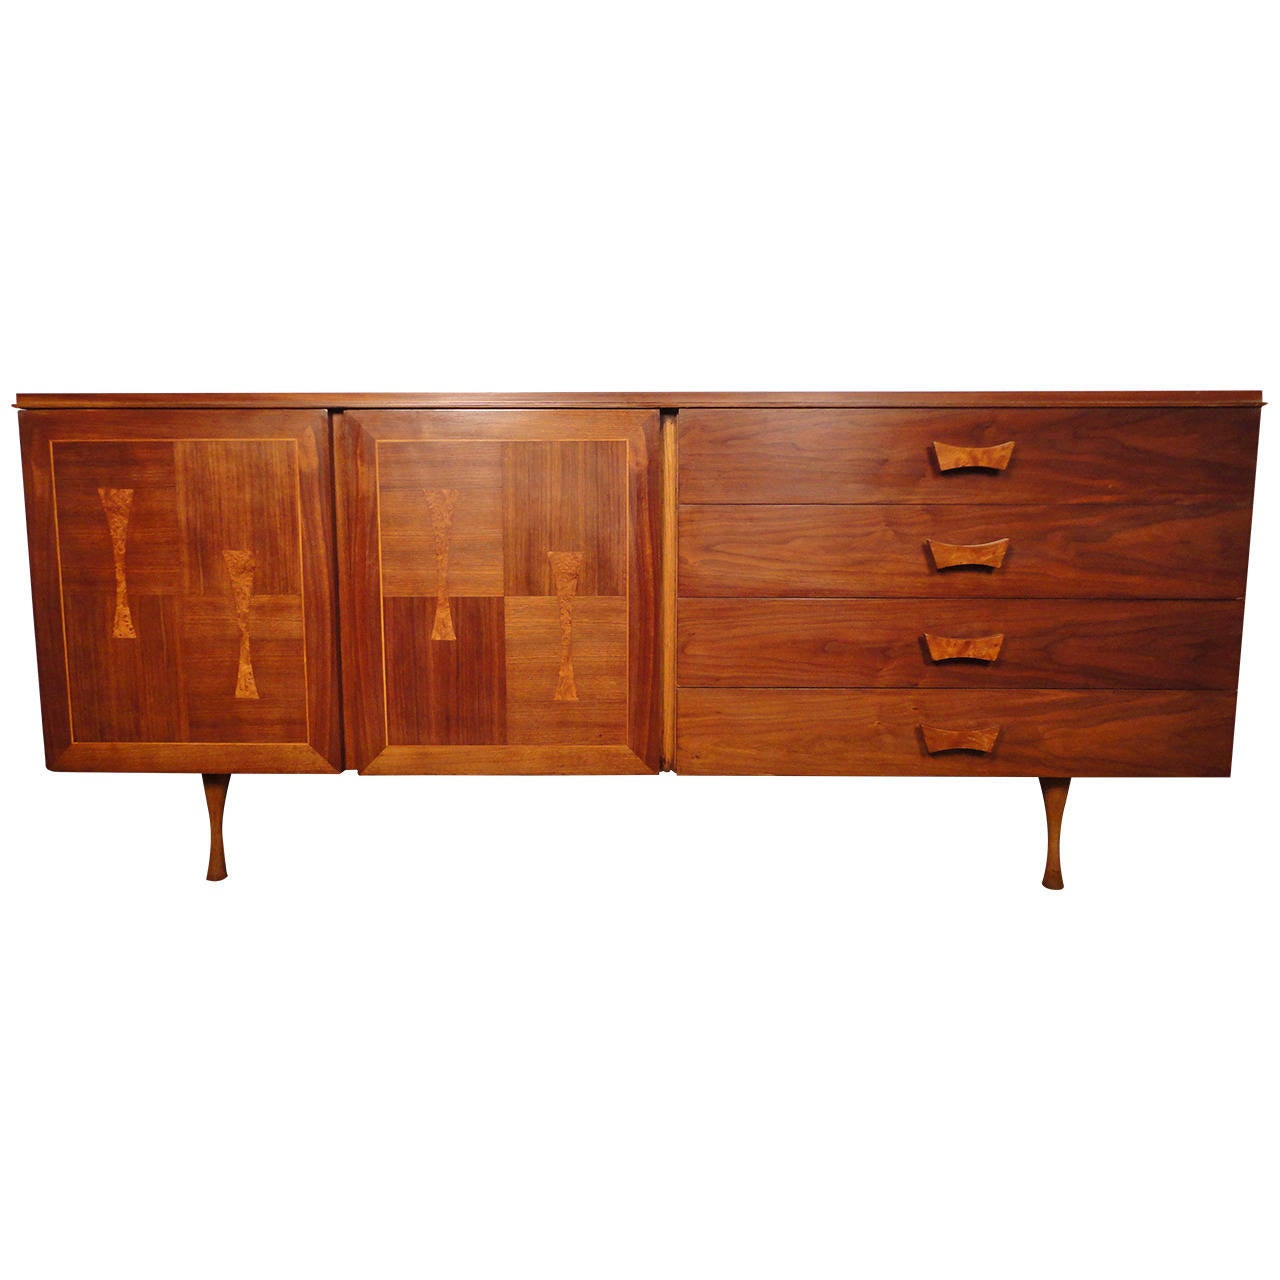 Unique Mid-Century Walnut Server with Burl Wood Inlay For Sale at ...